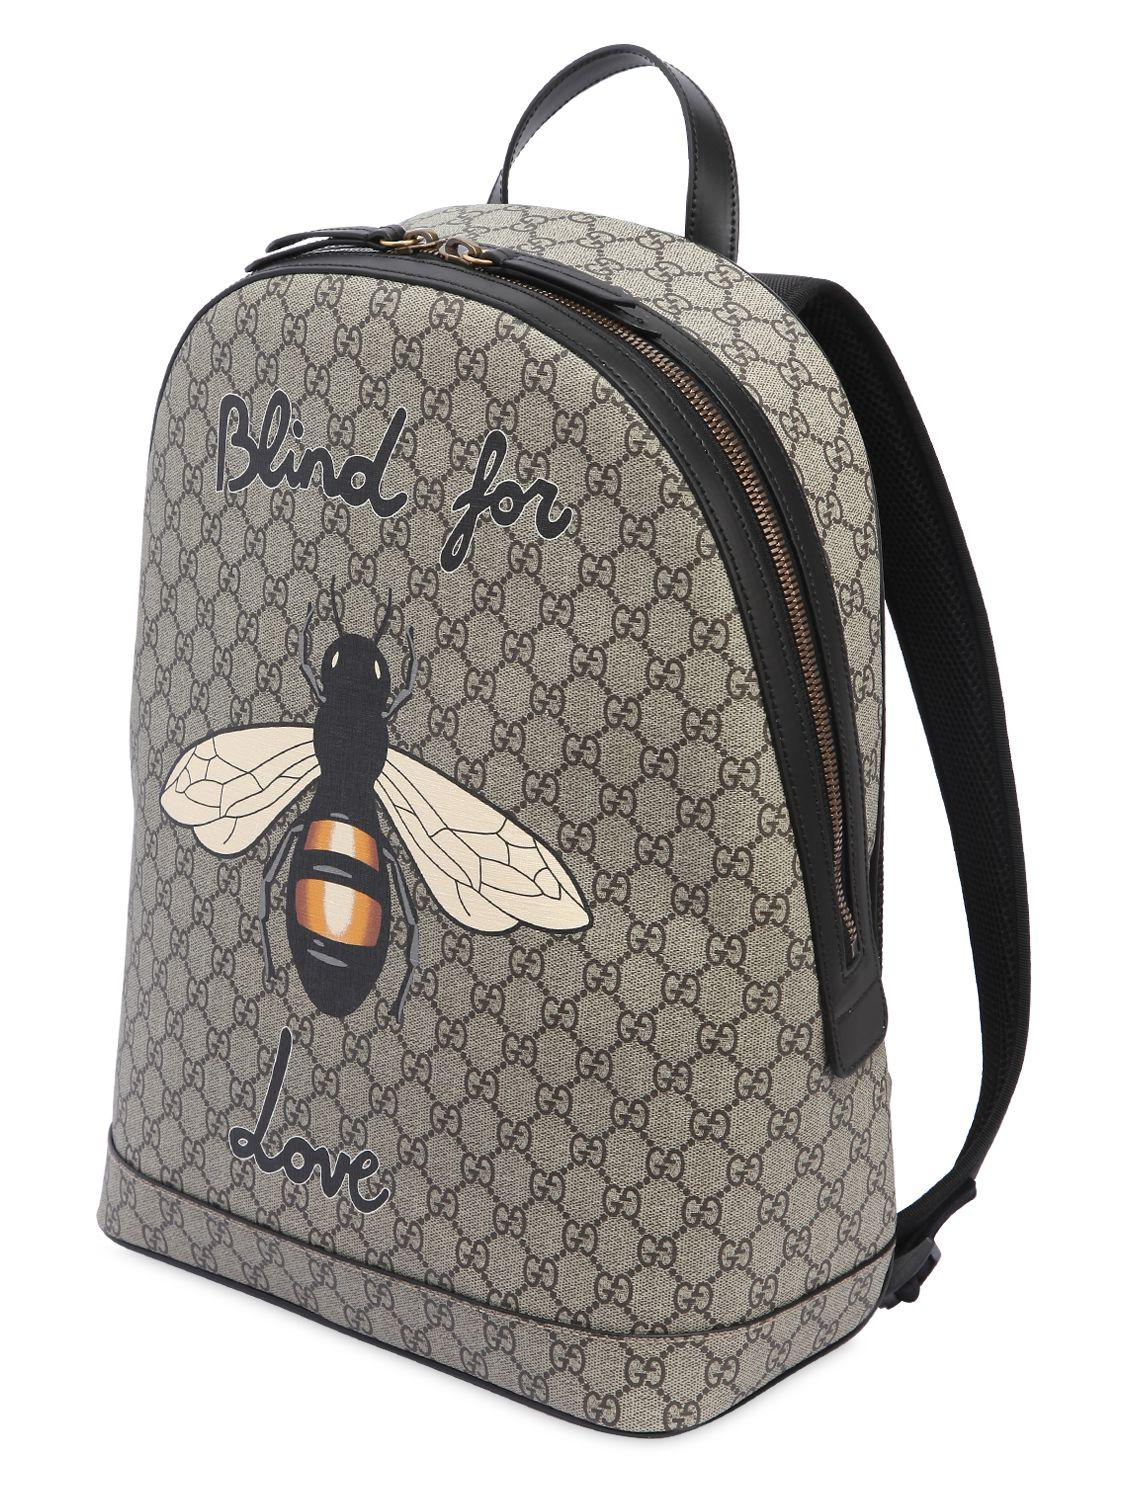 Lyst - Gucci Bee Printed Gg Supreme Backpack in Natural for Men